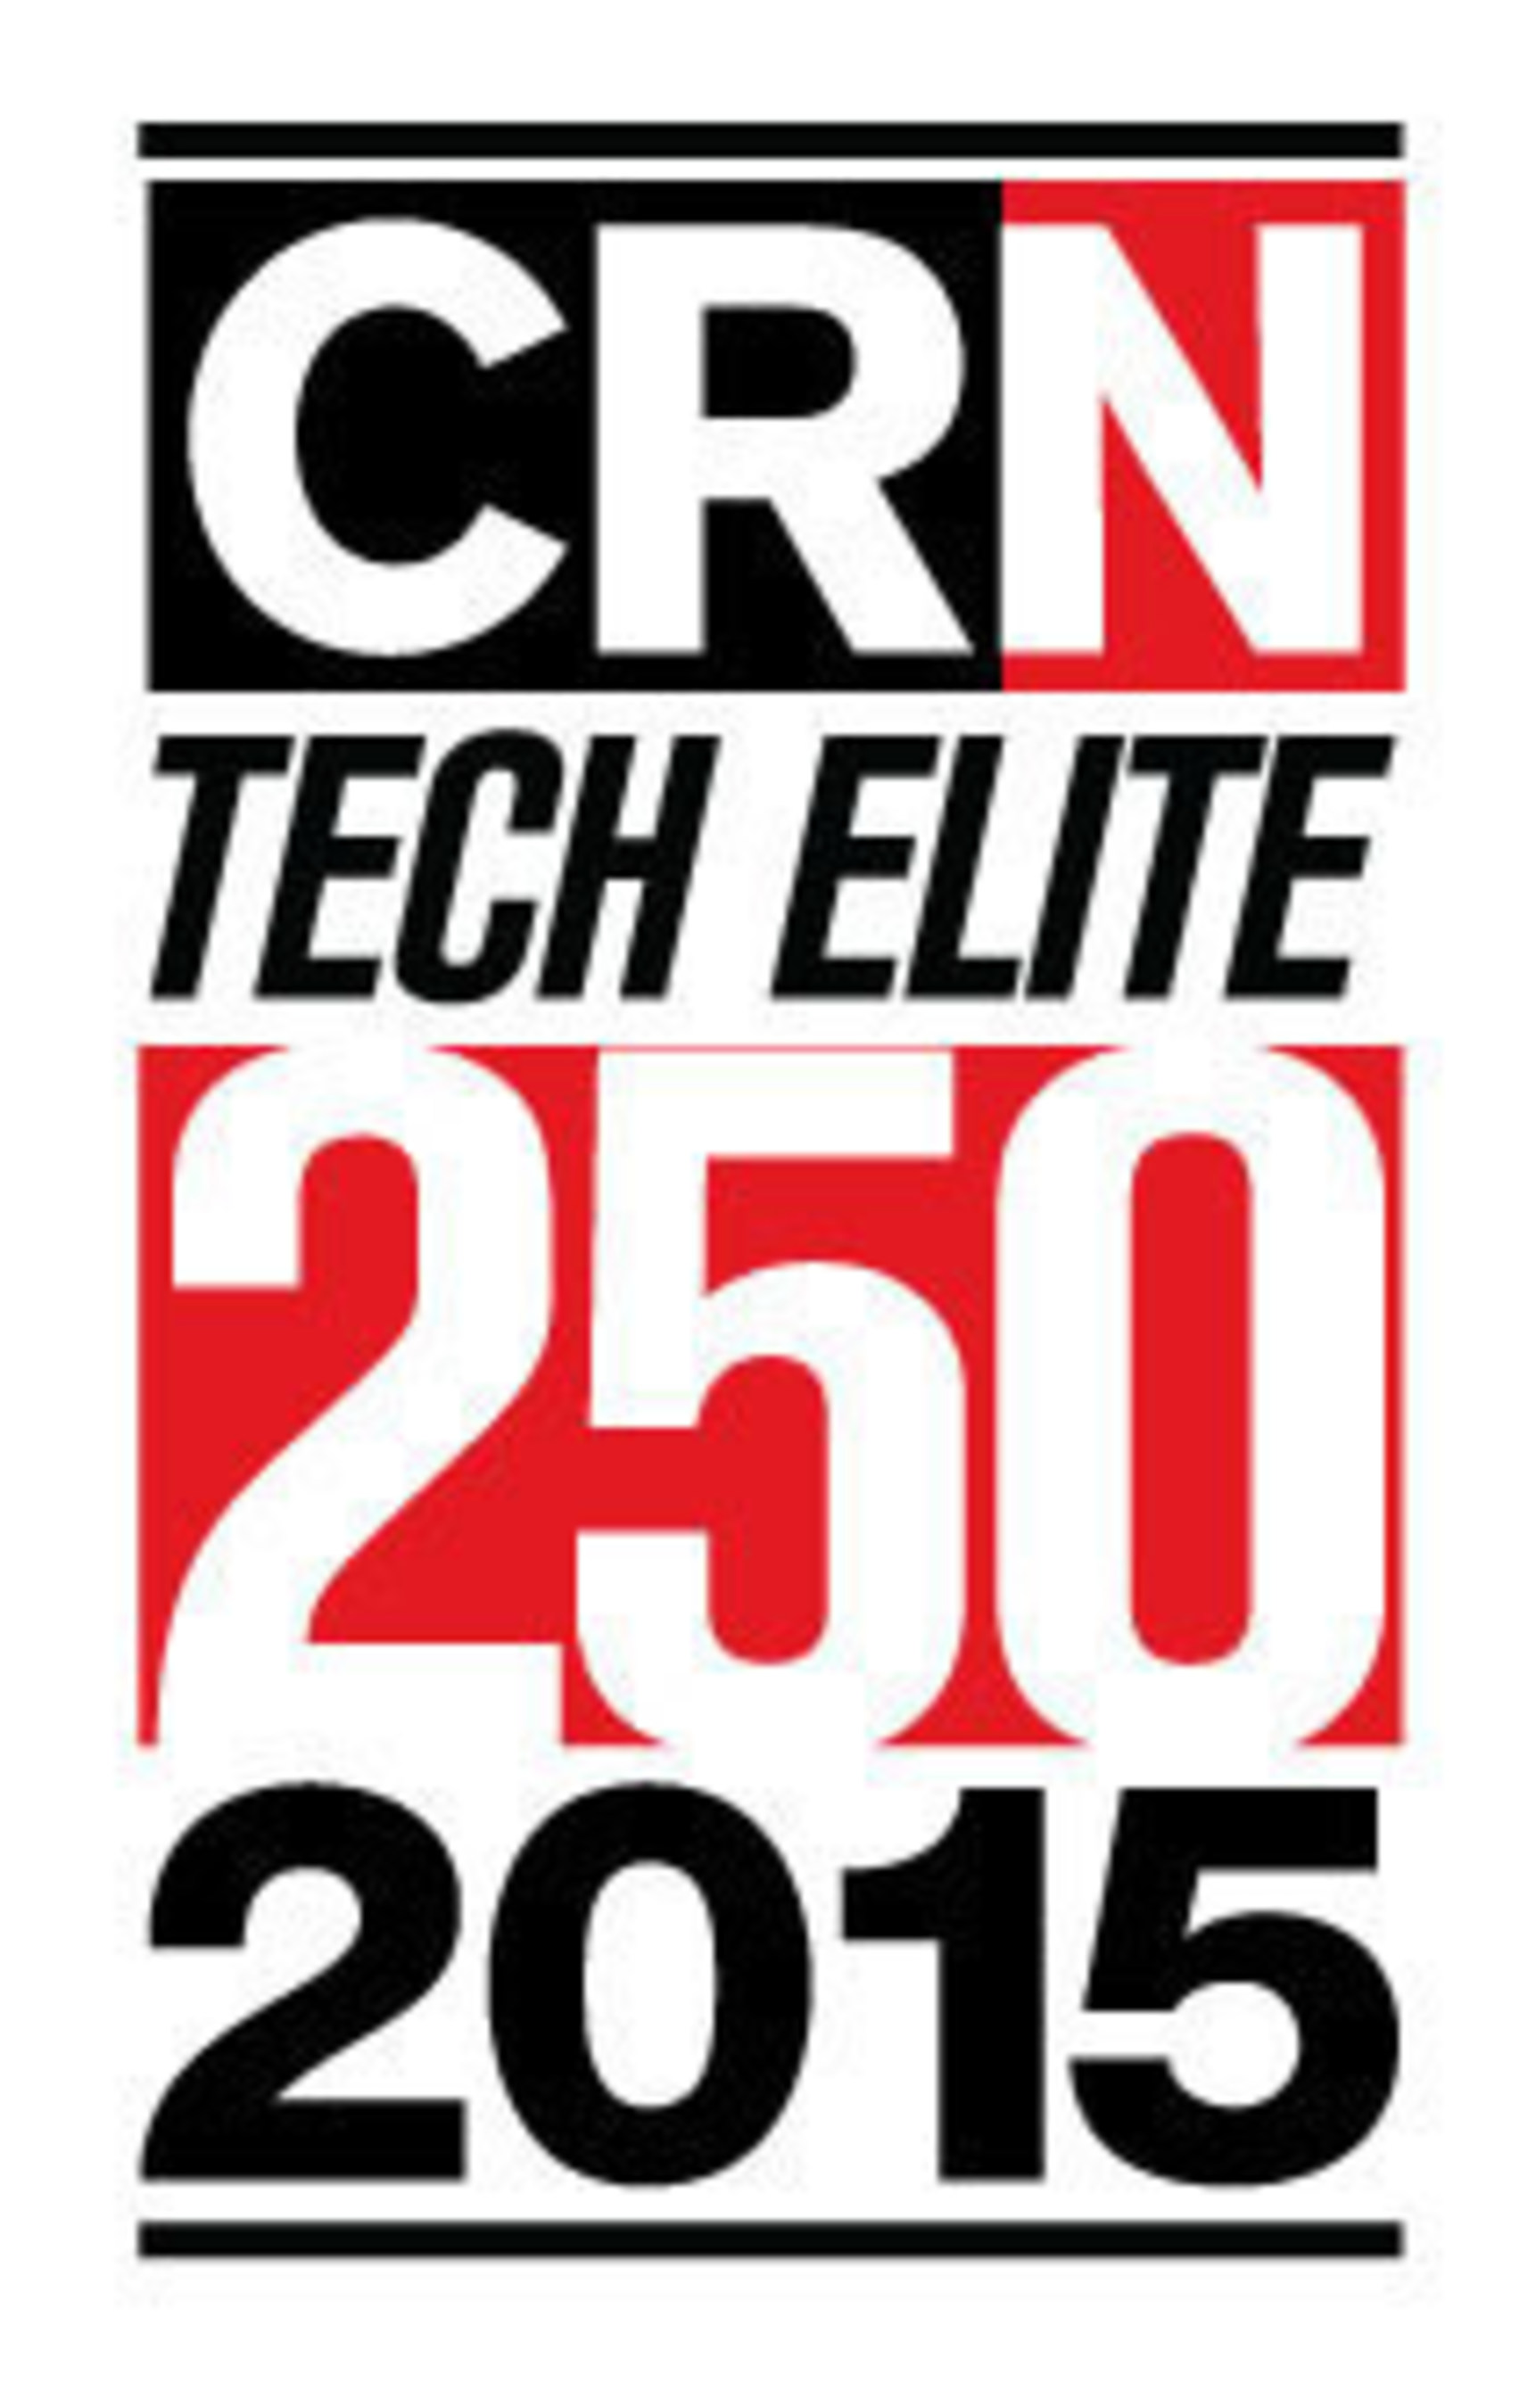 CCB Ranked Among Top 250 IT Companies